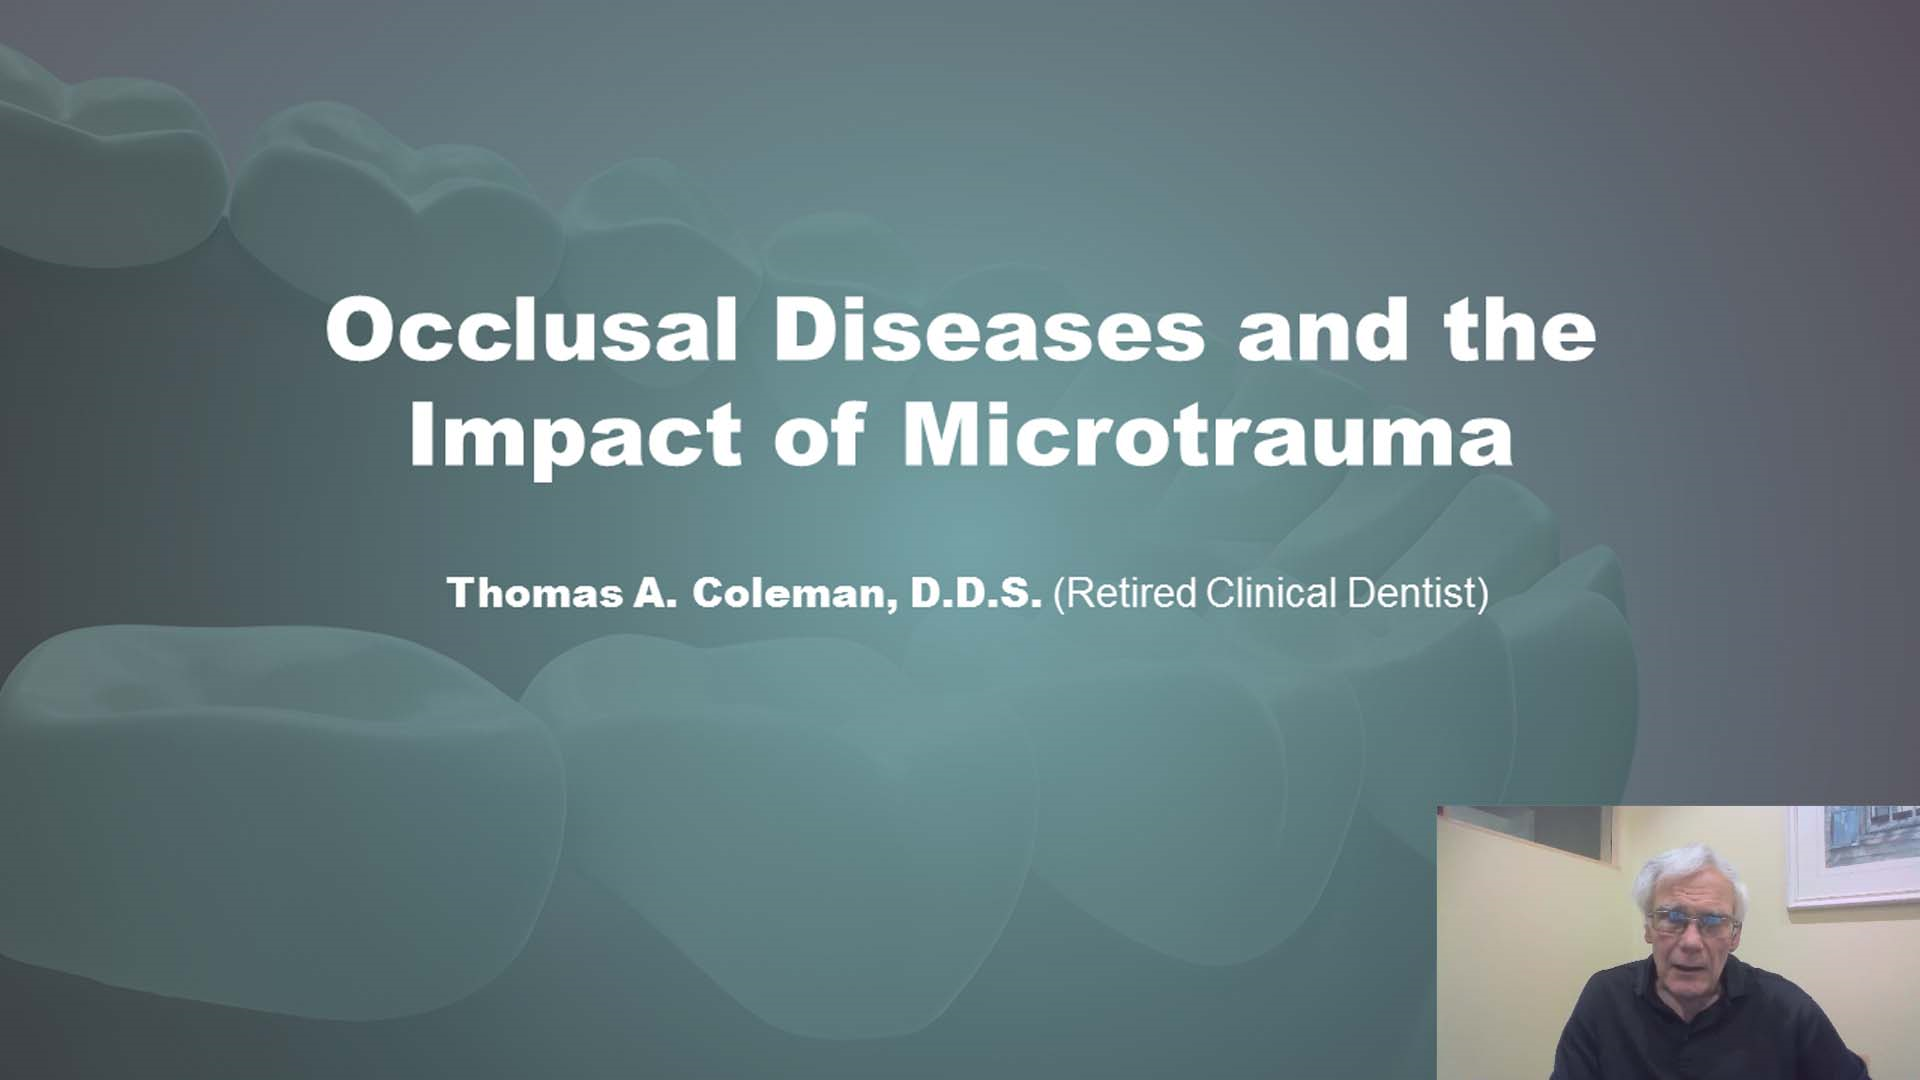 Occlusal Diseases and the Impact of Microtrauma